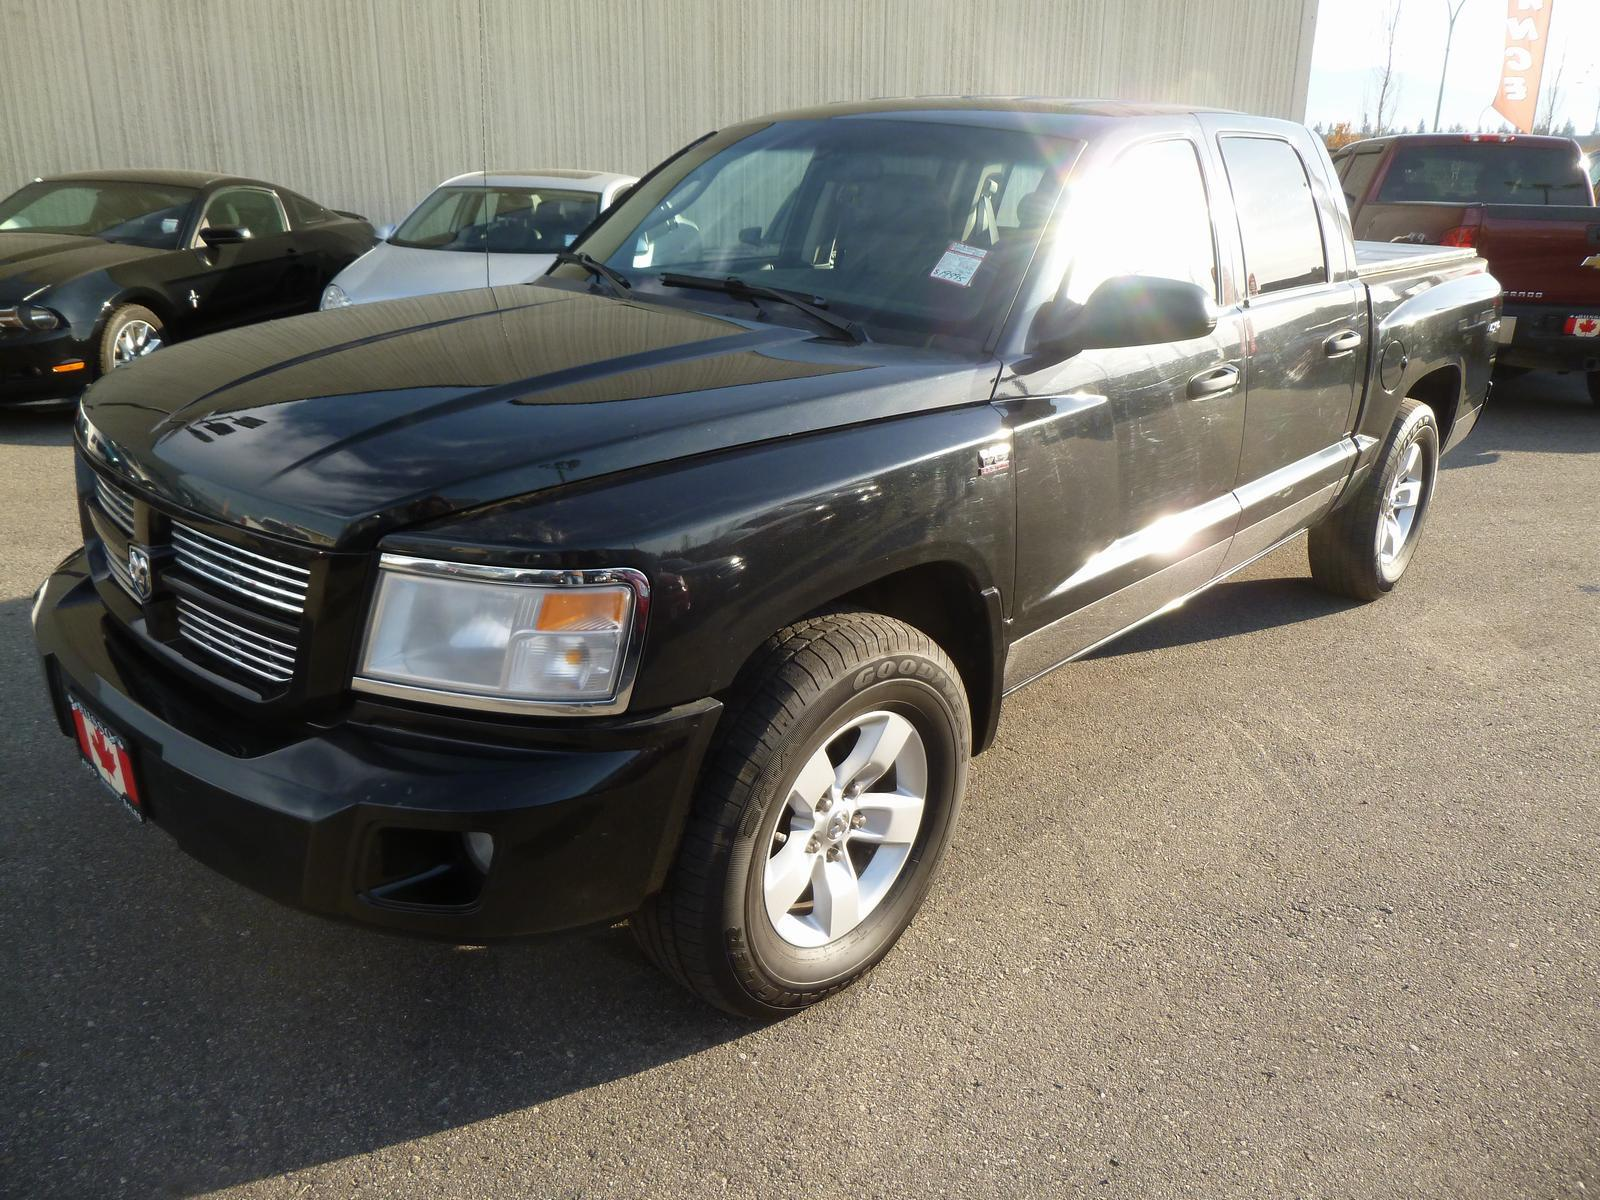 2010 Dodge Dakota SLT 4X4 #A7910